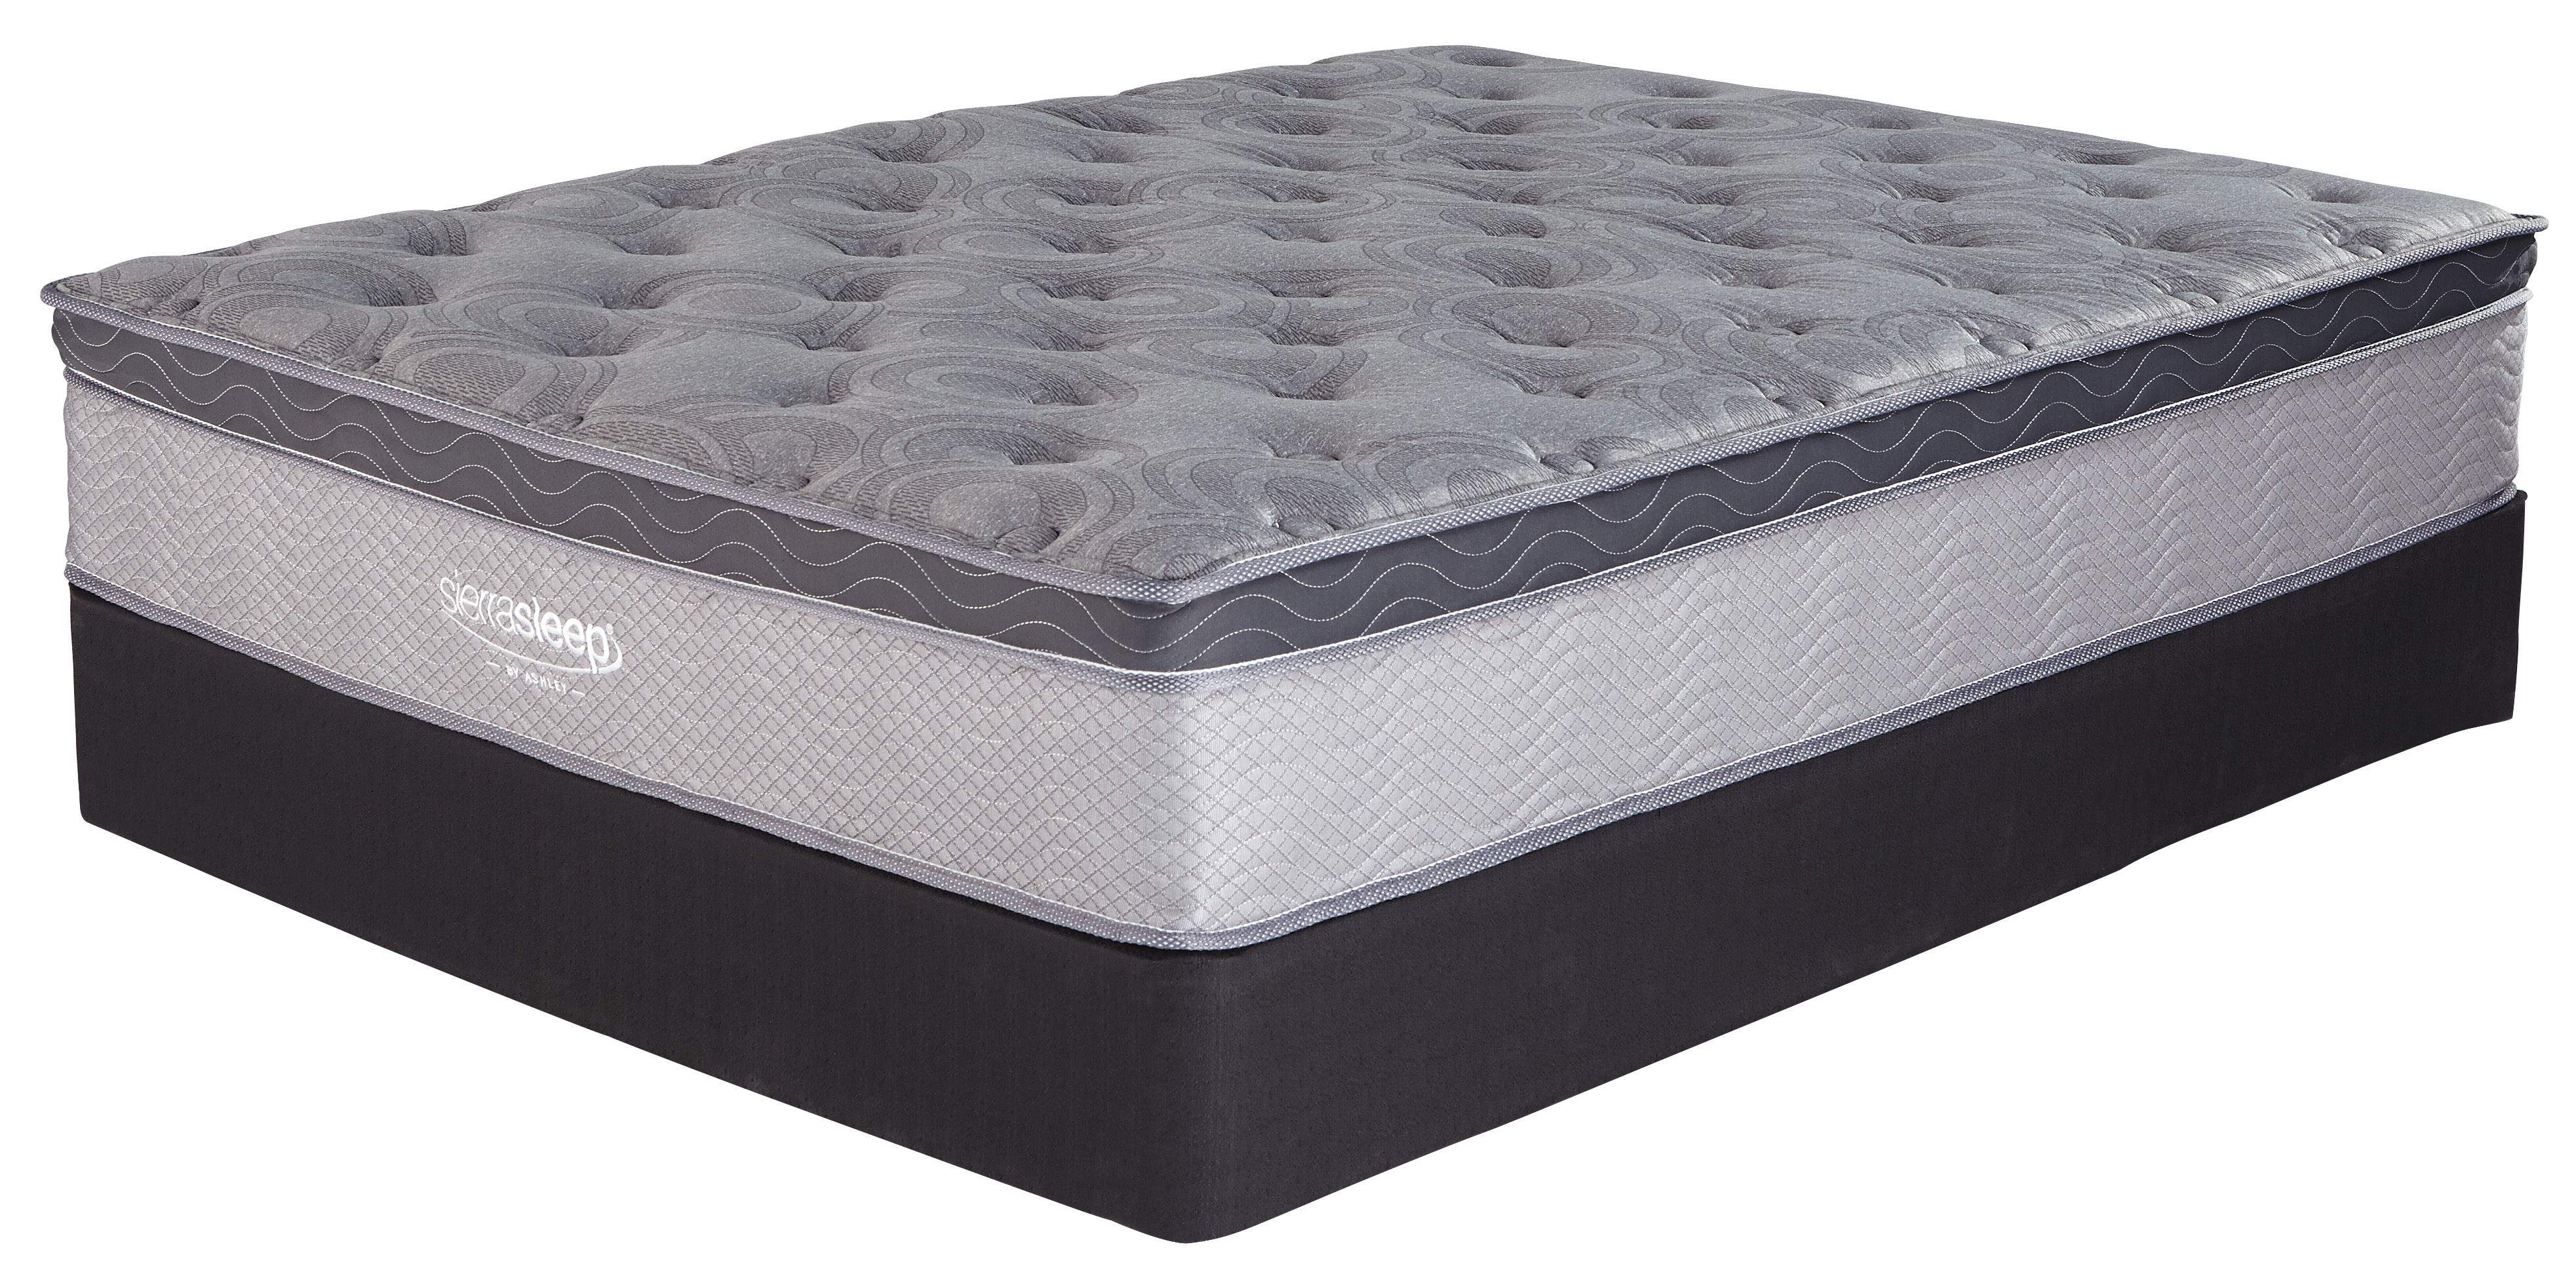 Ashley Furniture Augusta White King Mattress The Classy Home